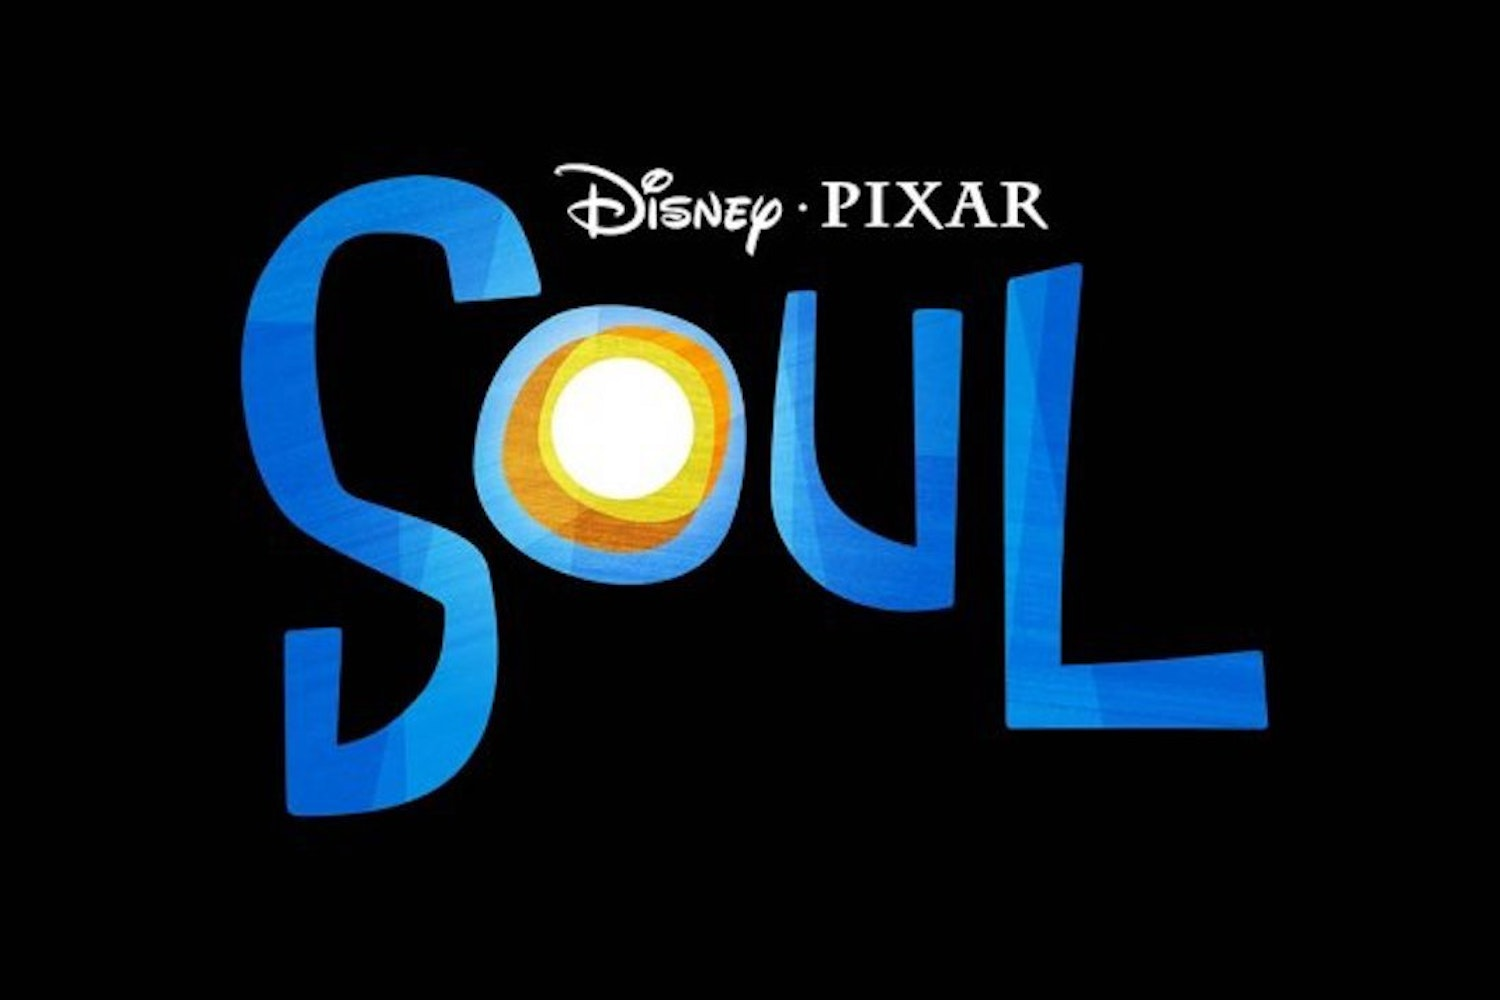 """Cover Image for Pixar's """"Soul"""" - Another Great Casting by the Media Giant"""